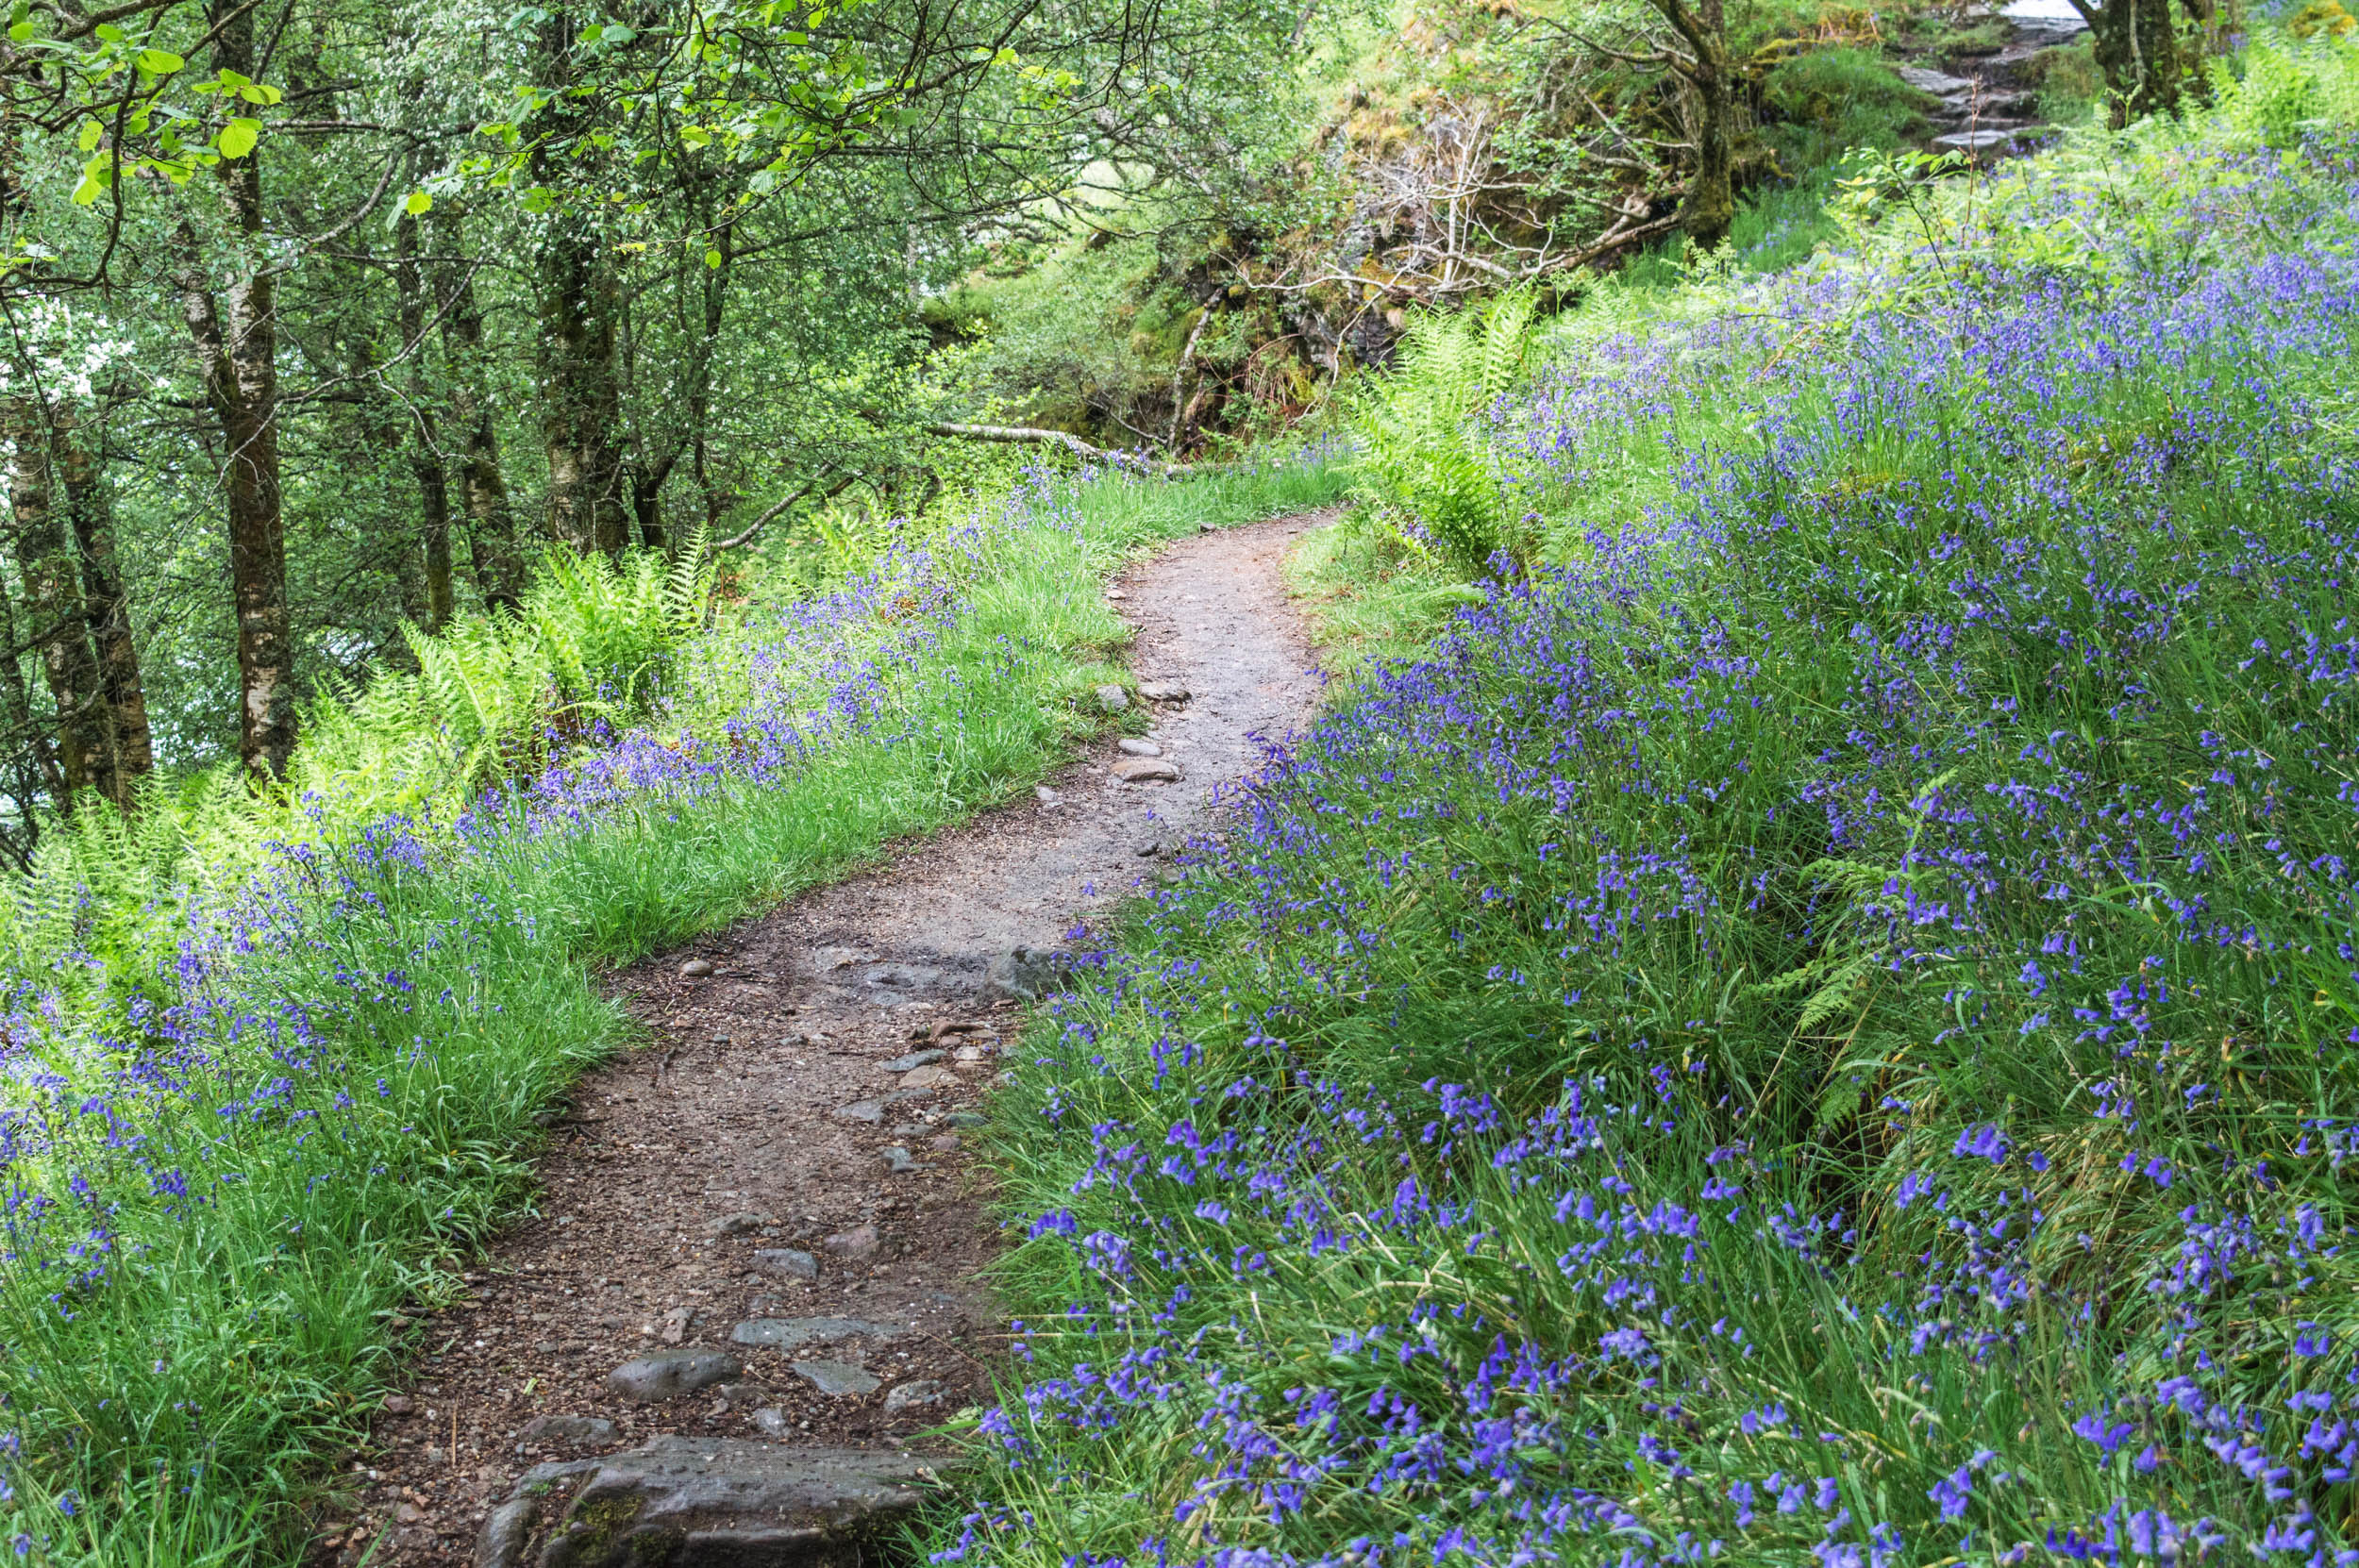 West Highland Way, Trossachs